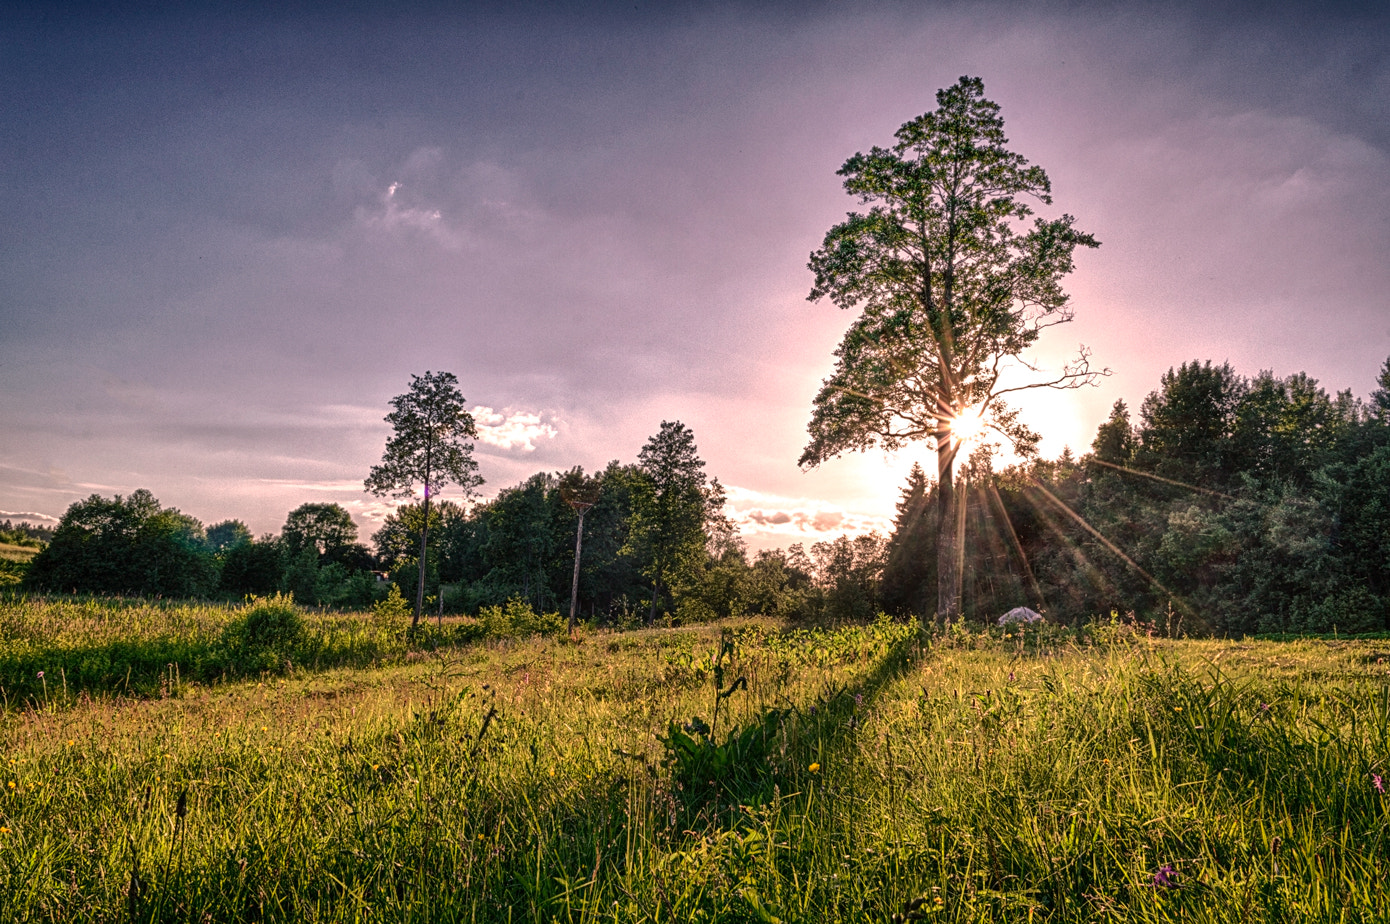 Photograph Magic sunset in countryside by Norbert Durko on 500px